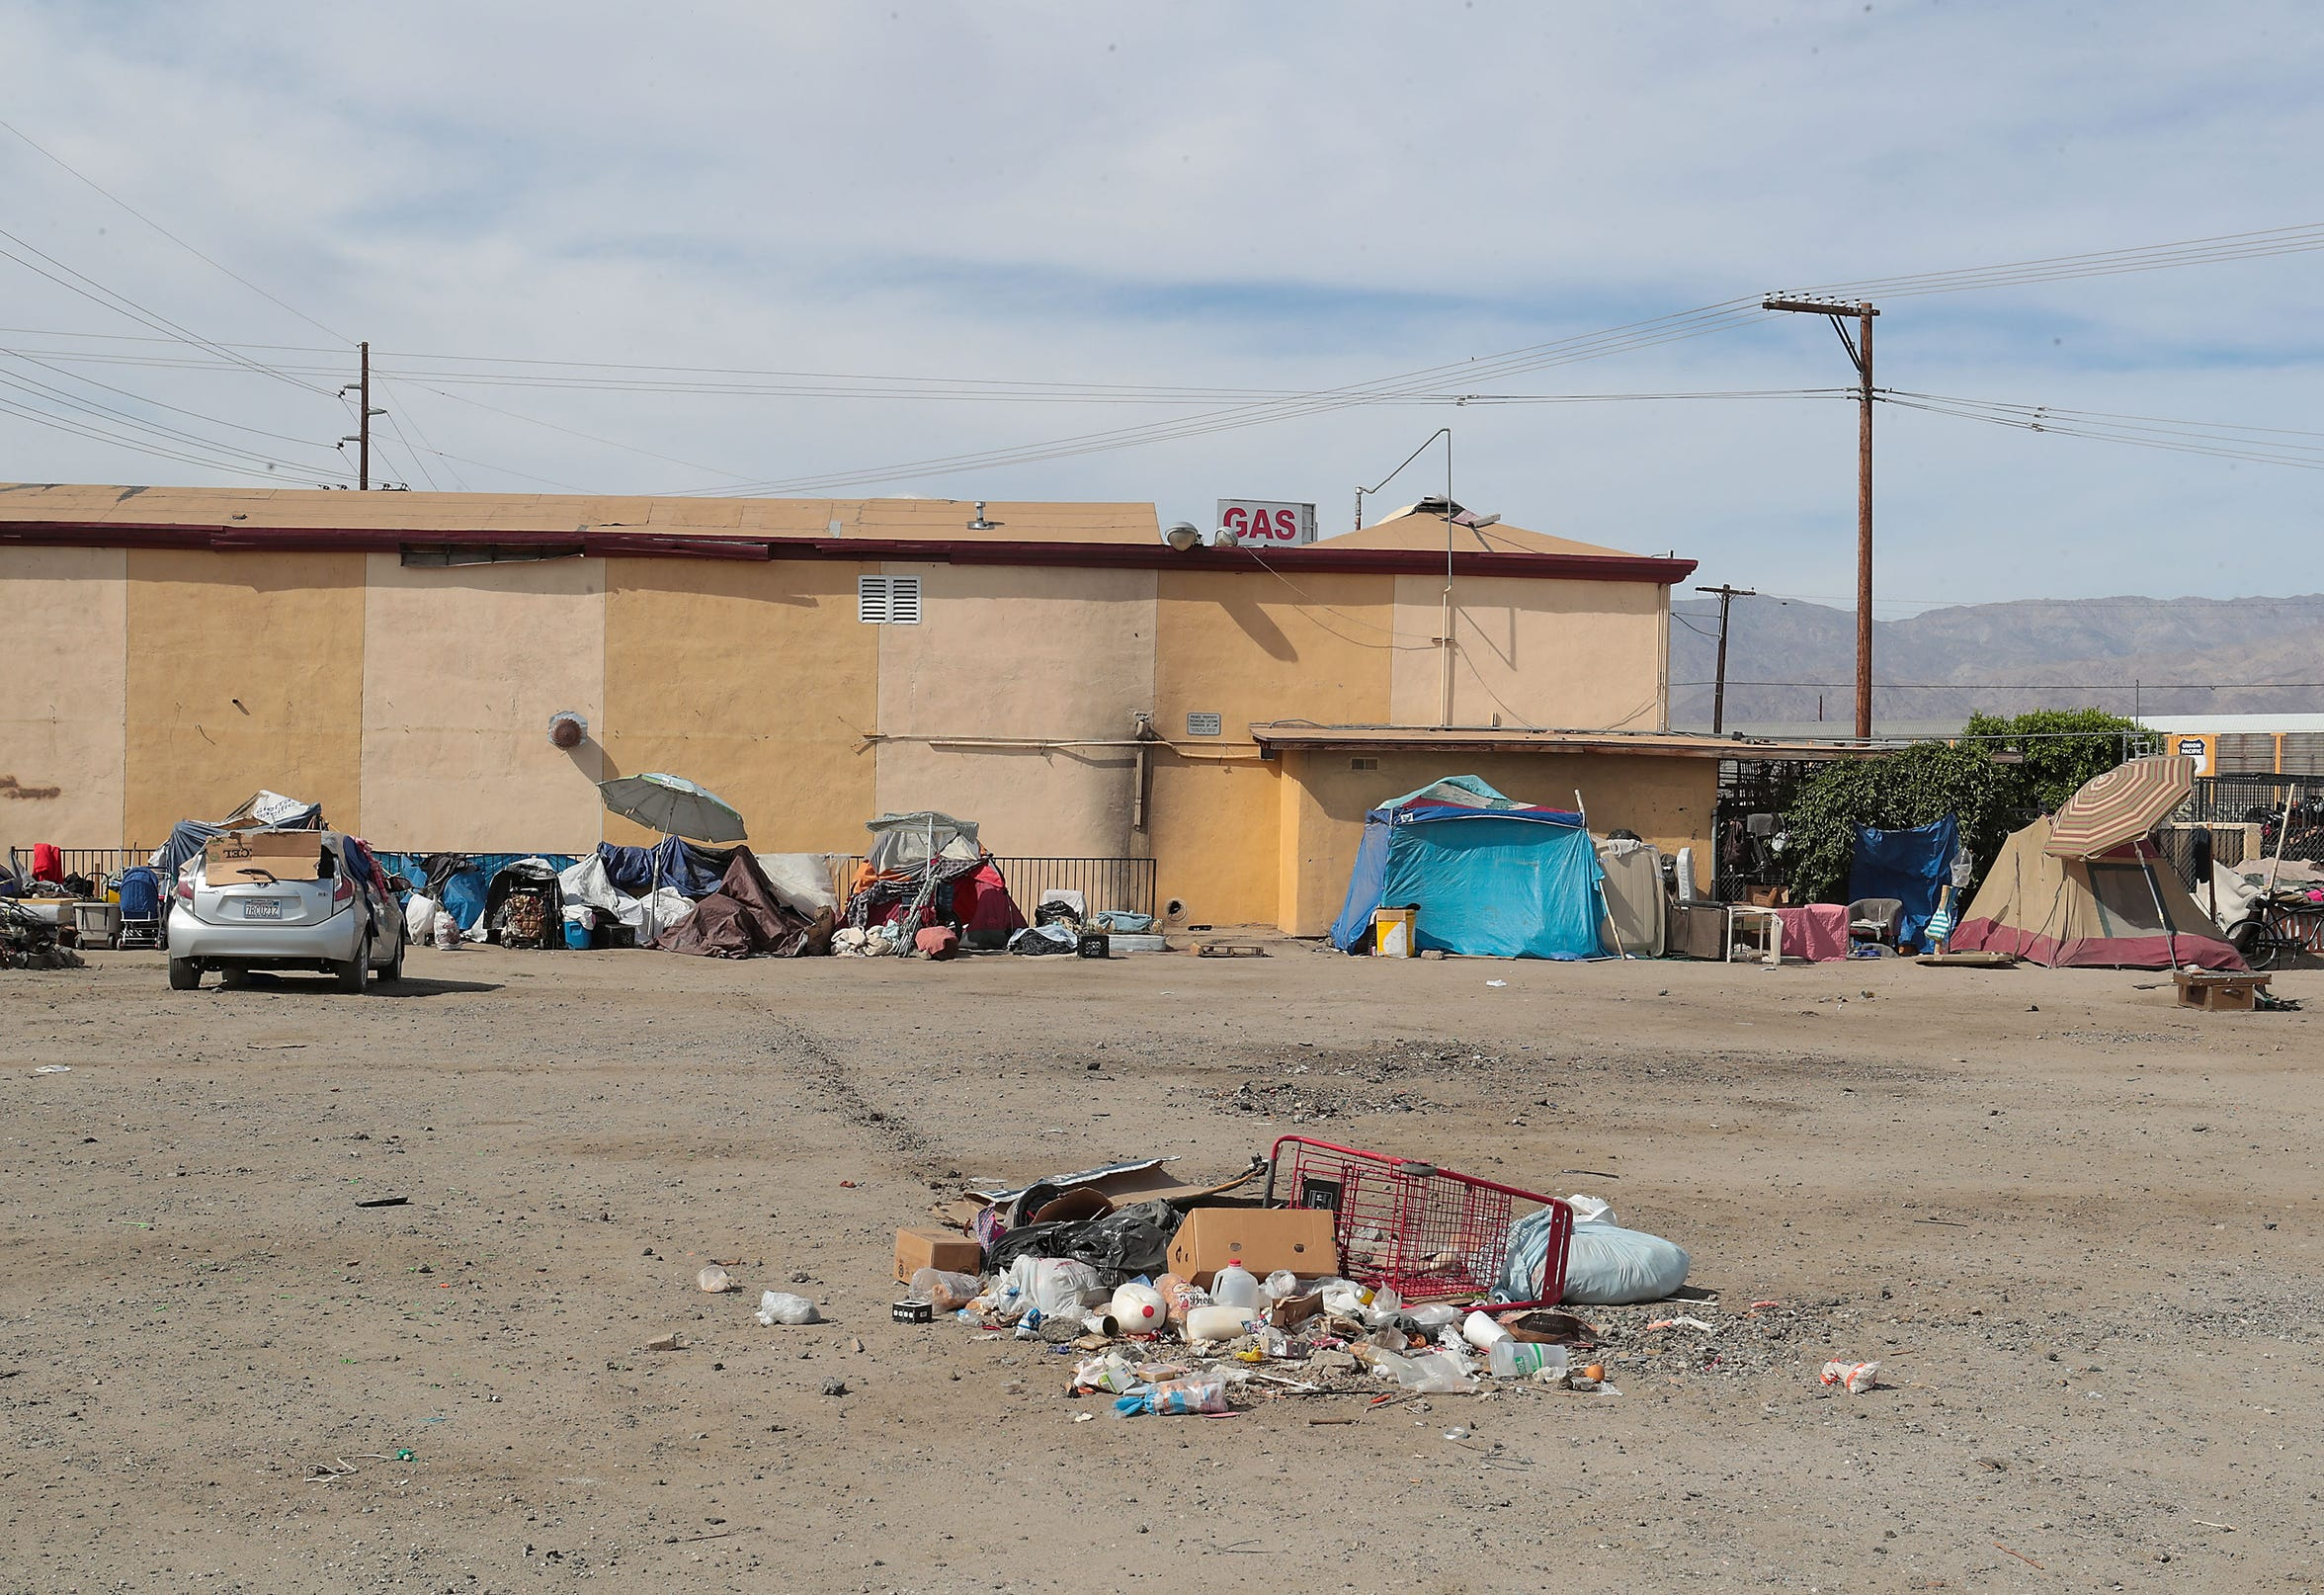 People experiencing homelessness have taken refuge in a large vacant lot near the intersection of Highway 111 and Van Buren St. in Indio, April 9, 2019.